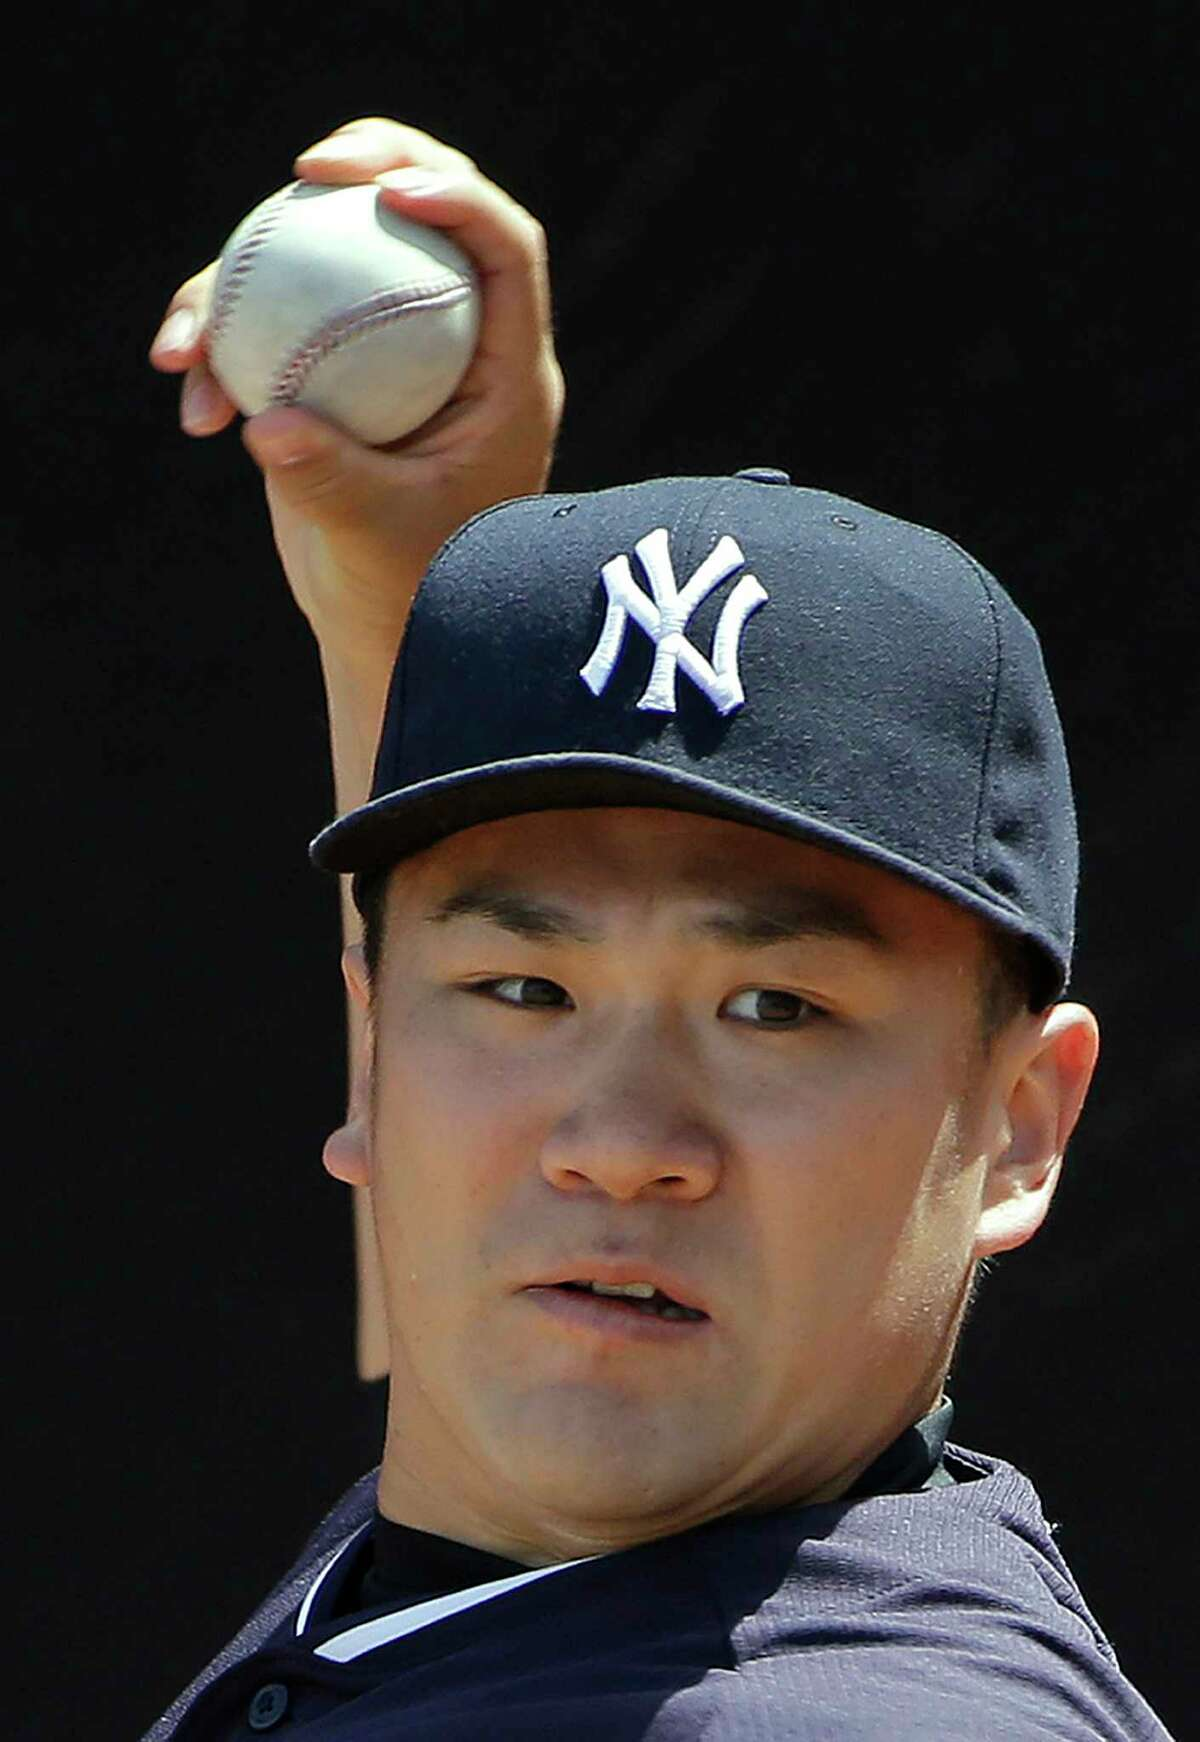 Yankees pitcher Masahiro Tanaka warms up in the bullpen before throwing a simulated game Monday.